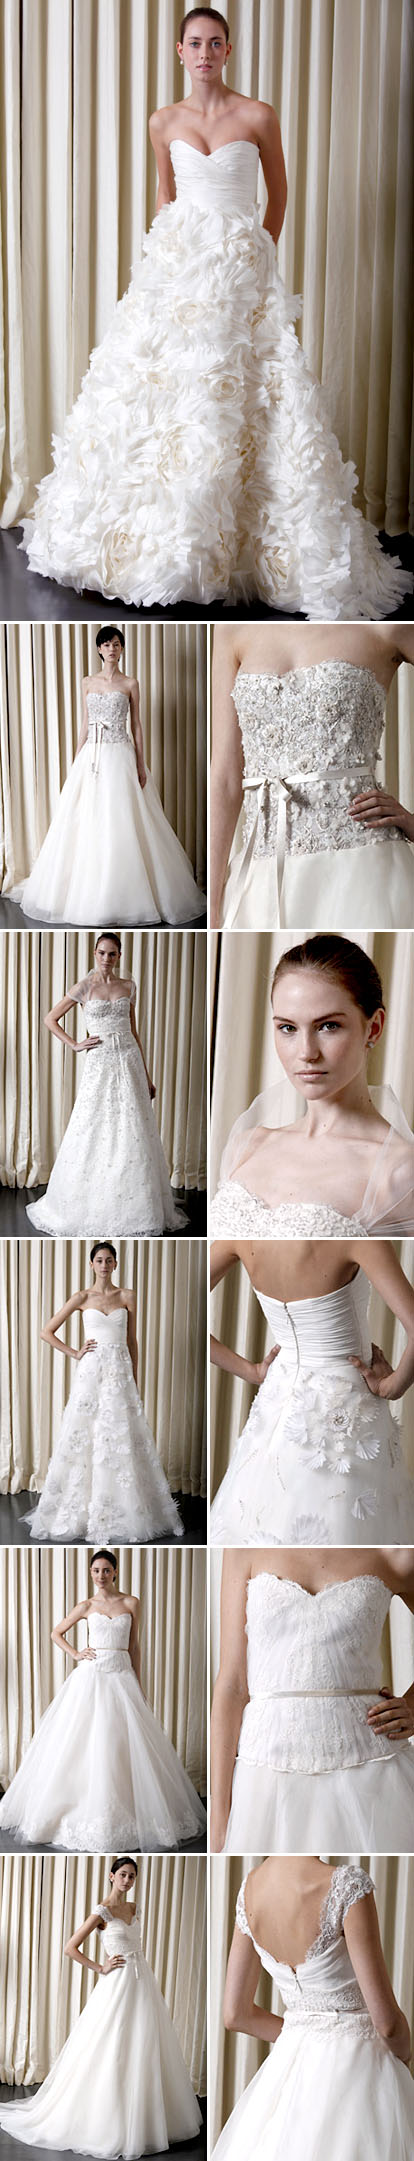 Spring 2010 bridal collection from Monique Lhuillier